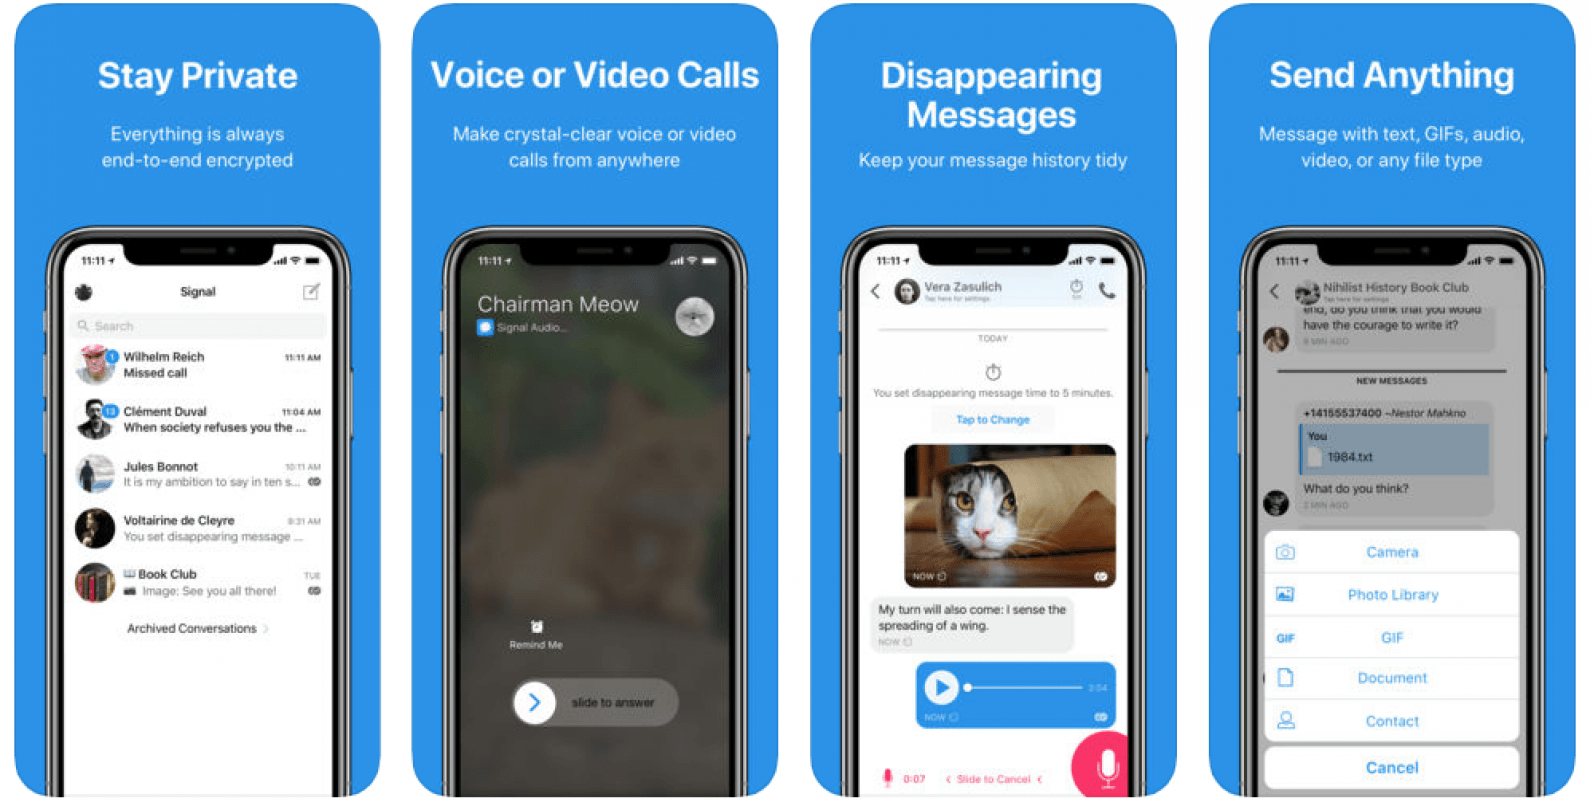 2019) How to Hide Text Messages on iPhone by Hiding